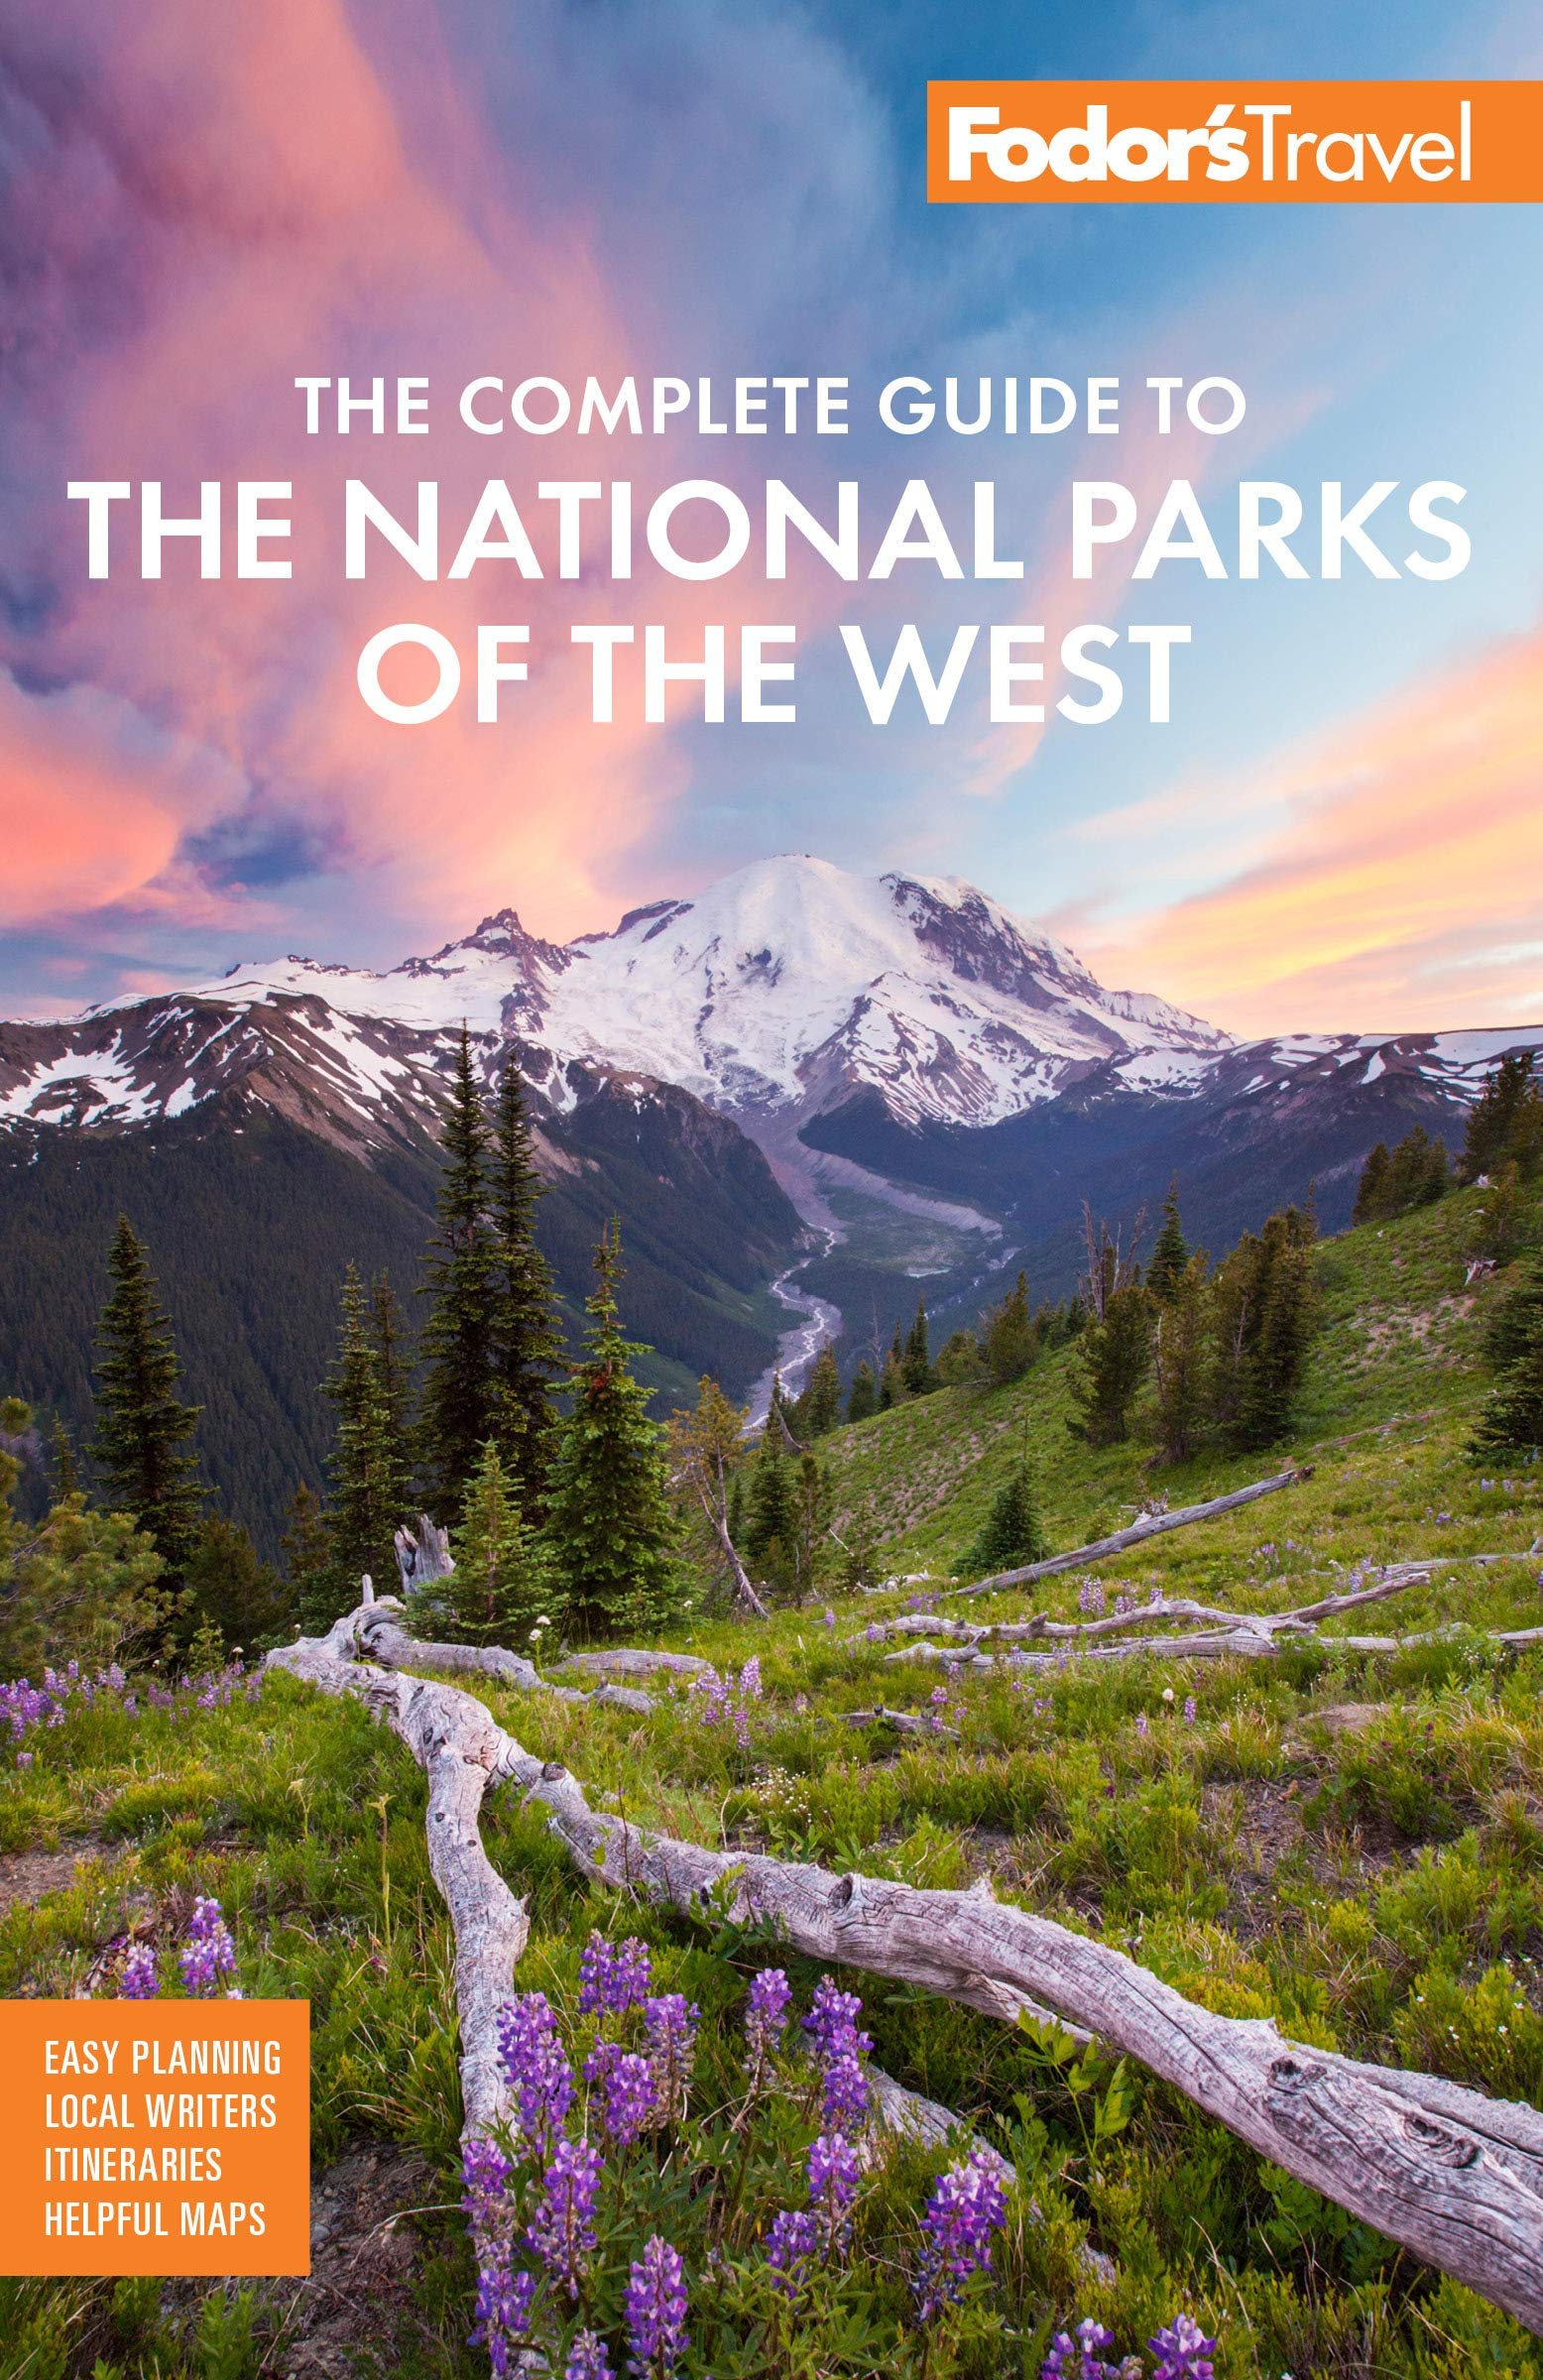 Image result for fodors complete guide to national parks of the westr